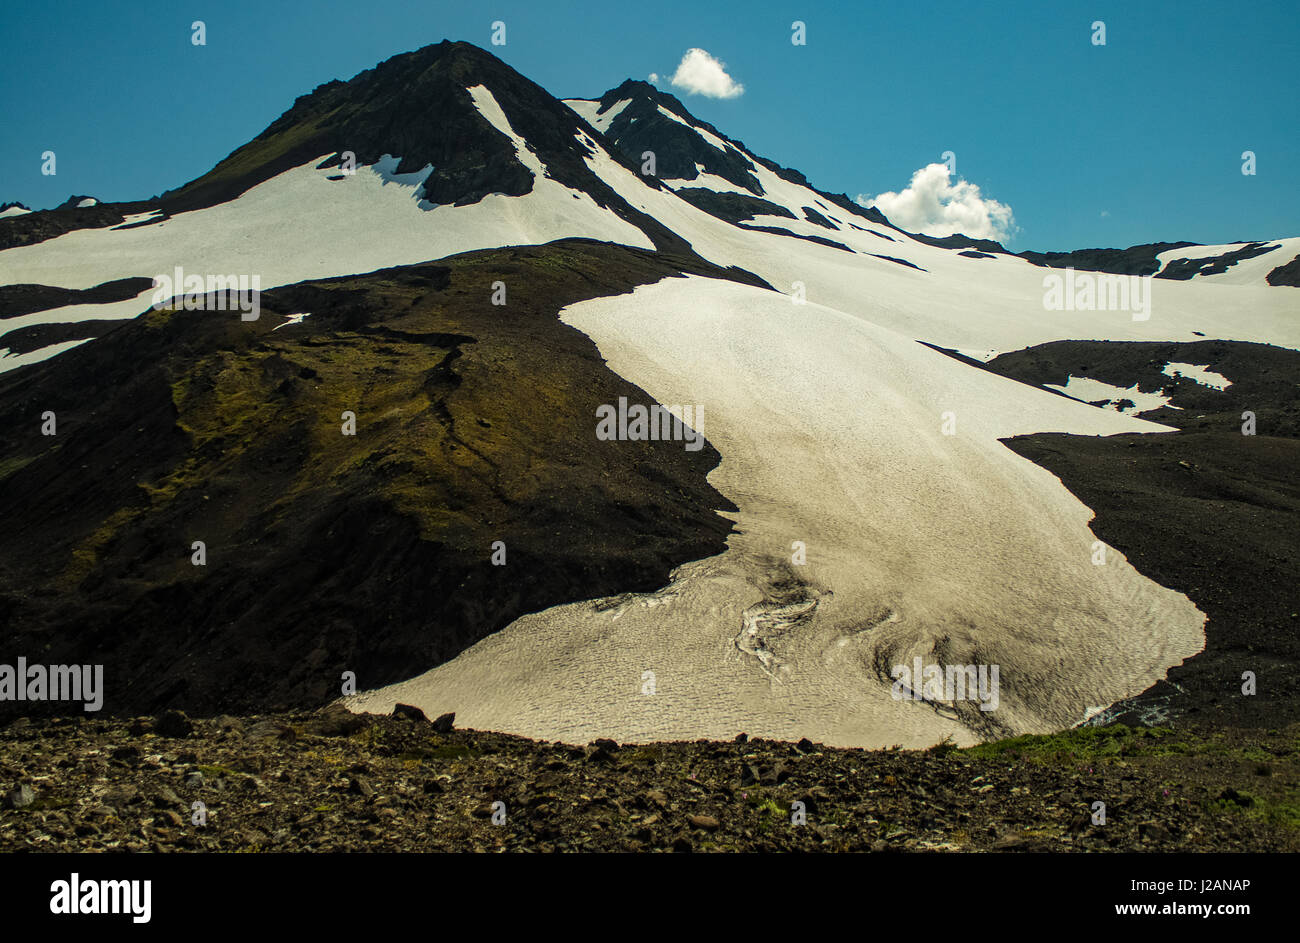 Receded glacier in Kachemak State Park. - Stock Image